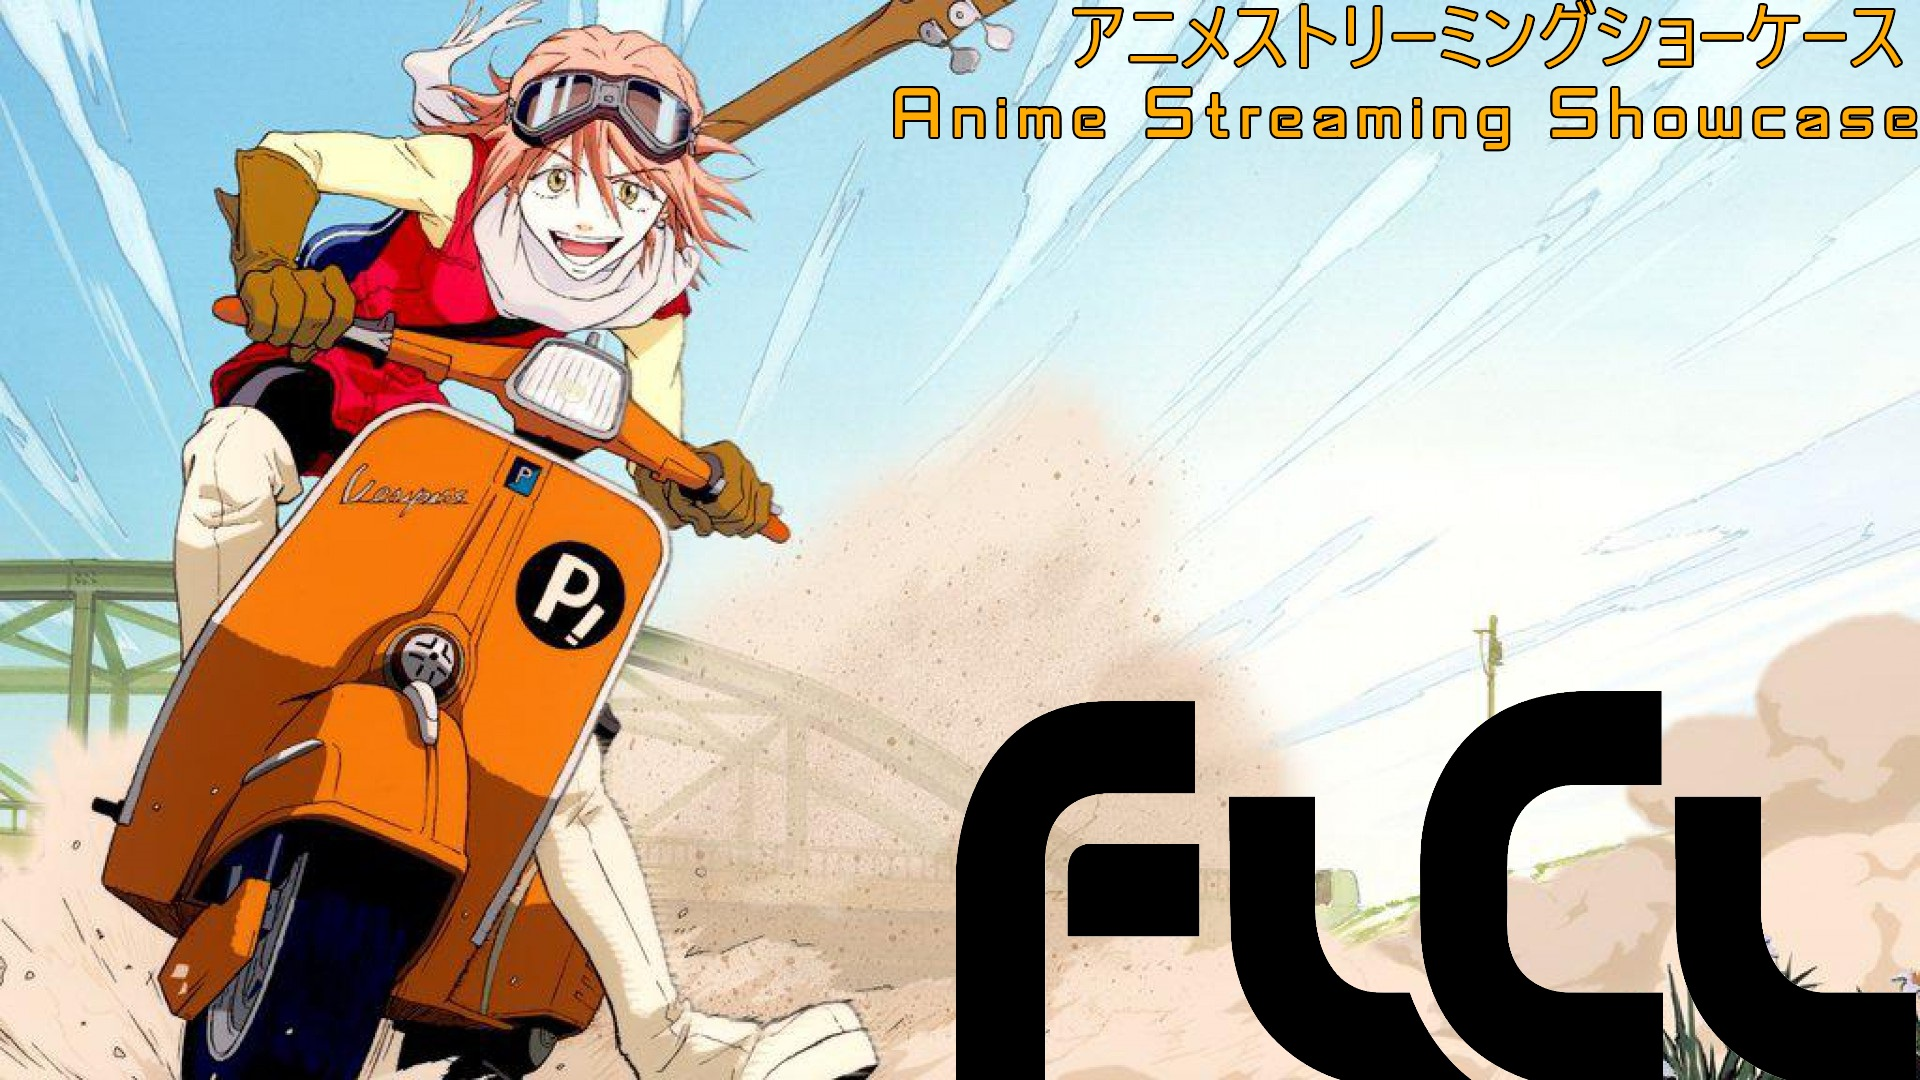 FLCL, FLCL2, FLCL3, anime,anime streaming showcase, A.S.S., youtube, funimation, hulu, netflix, gainax,trigger,